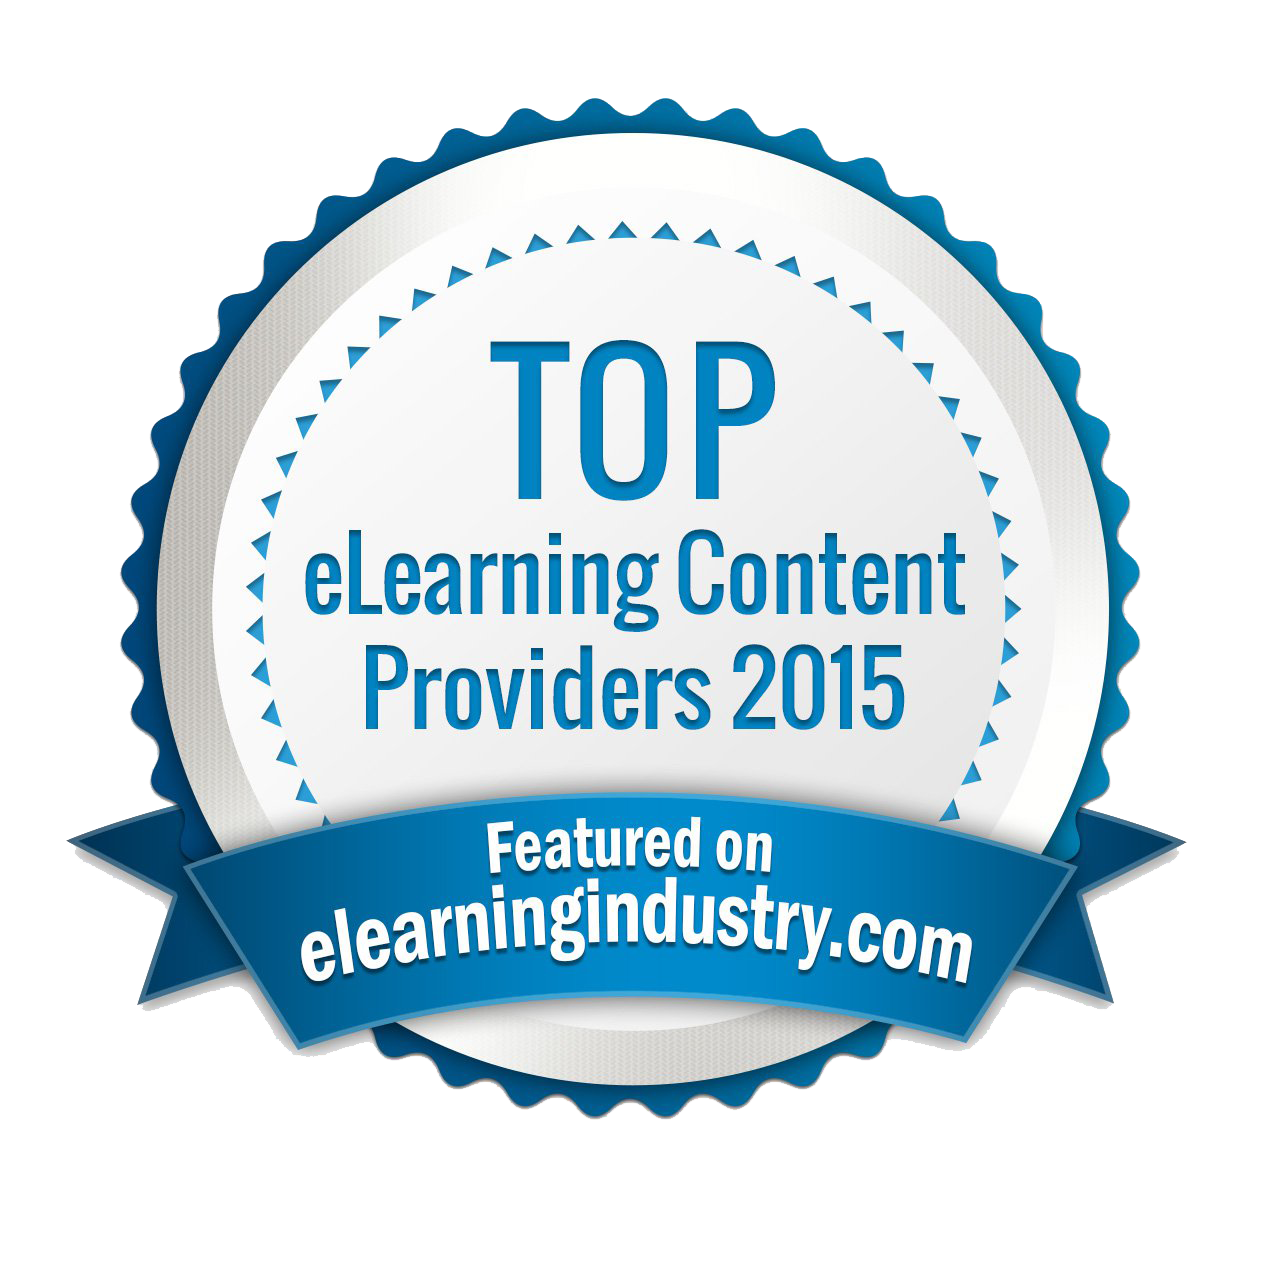 Top 10 eLearning Content Development Companies 2015